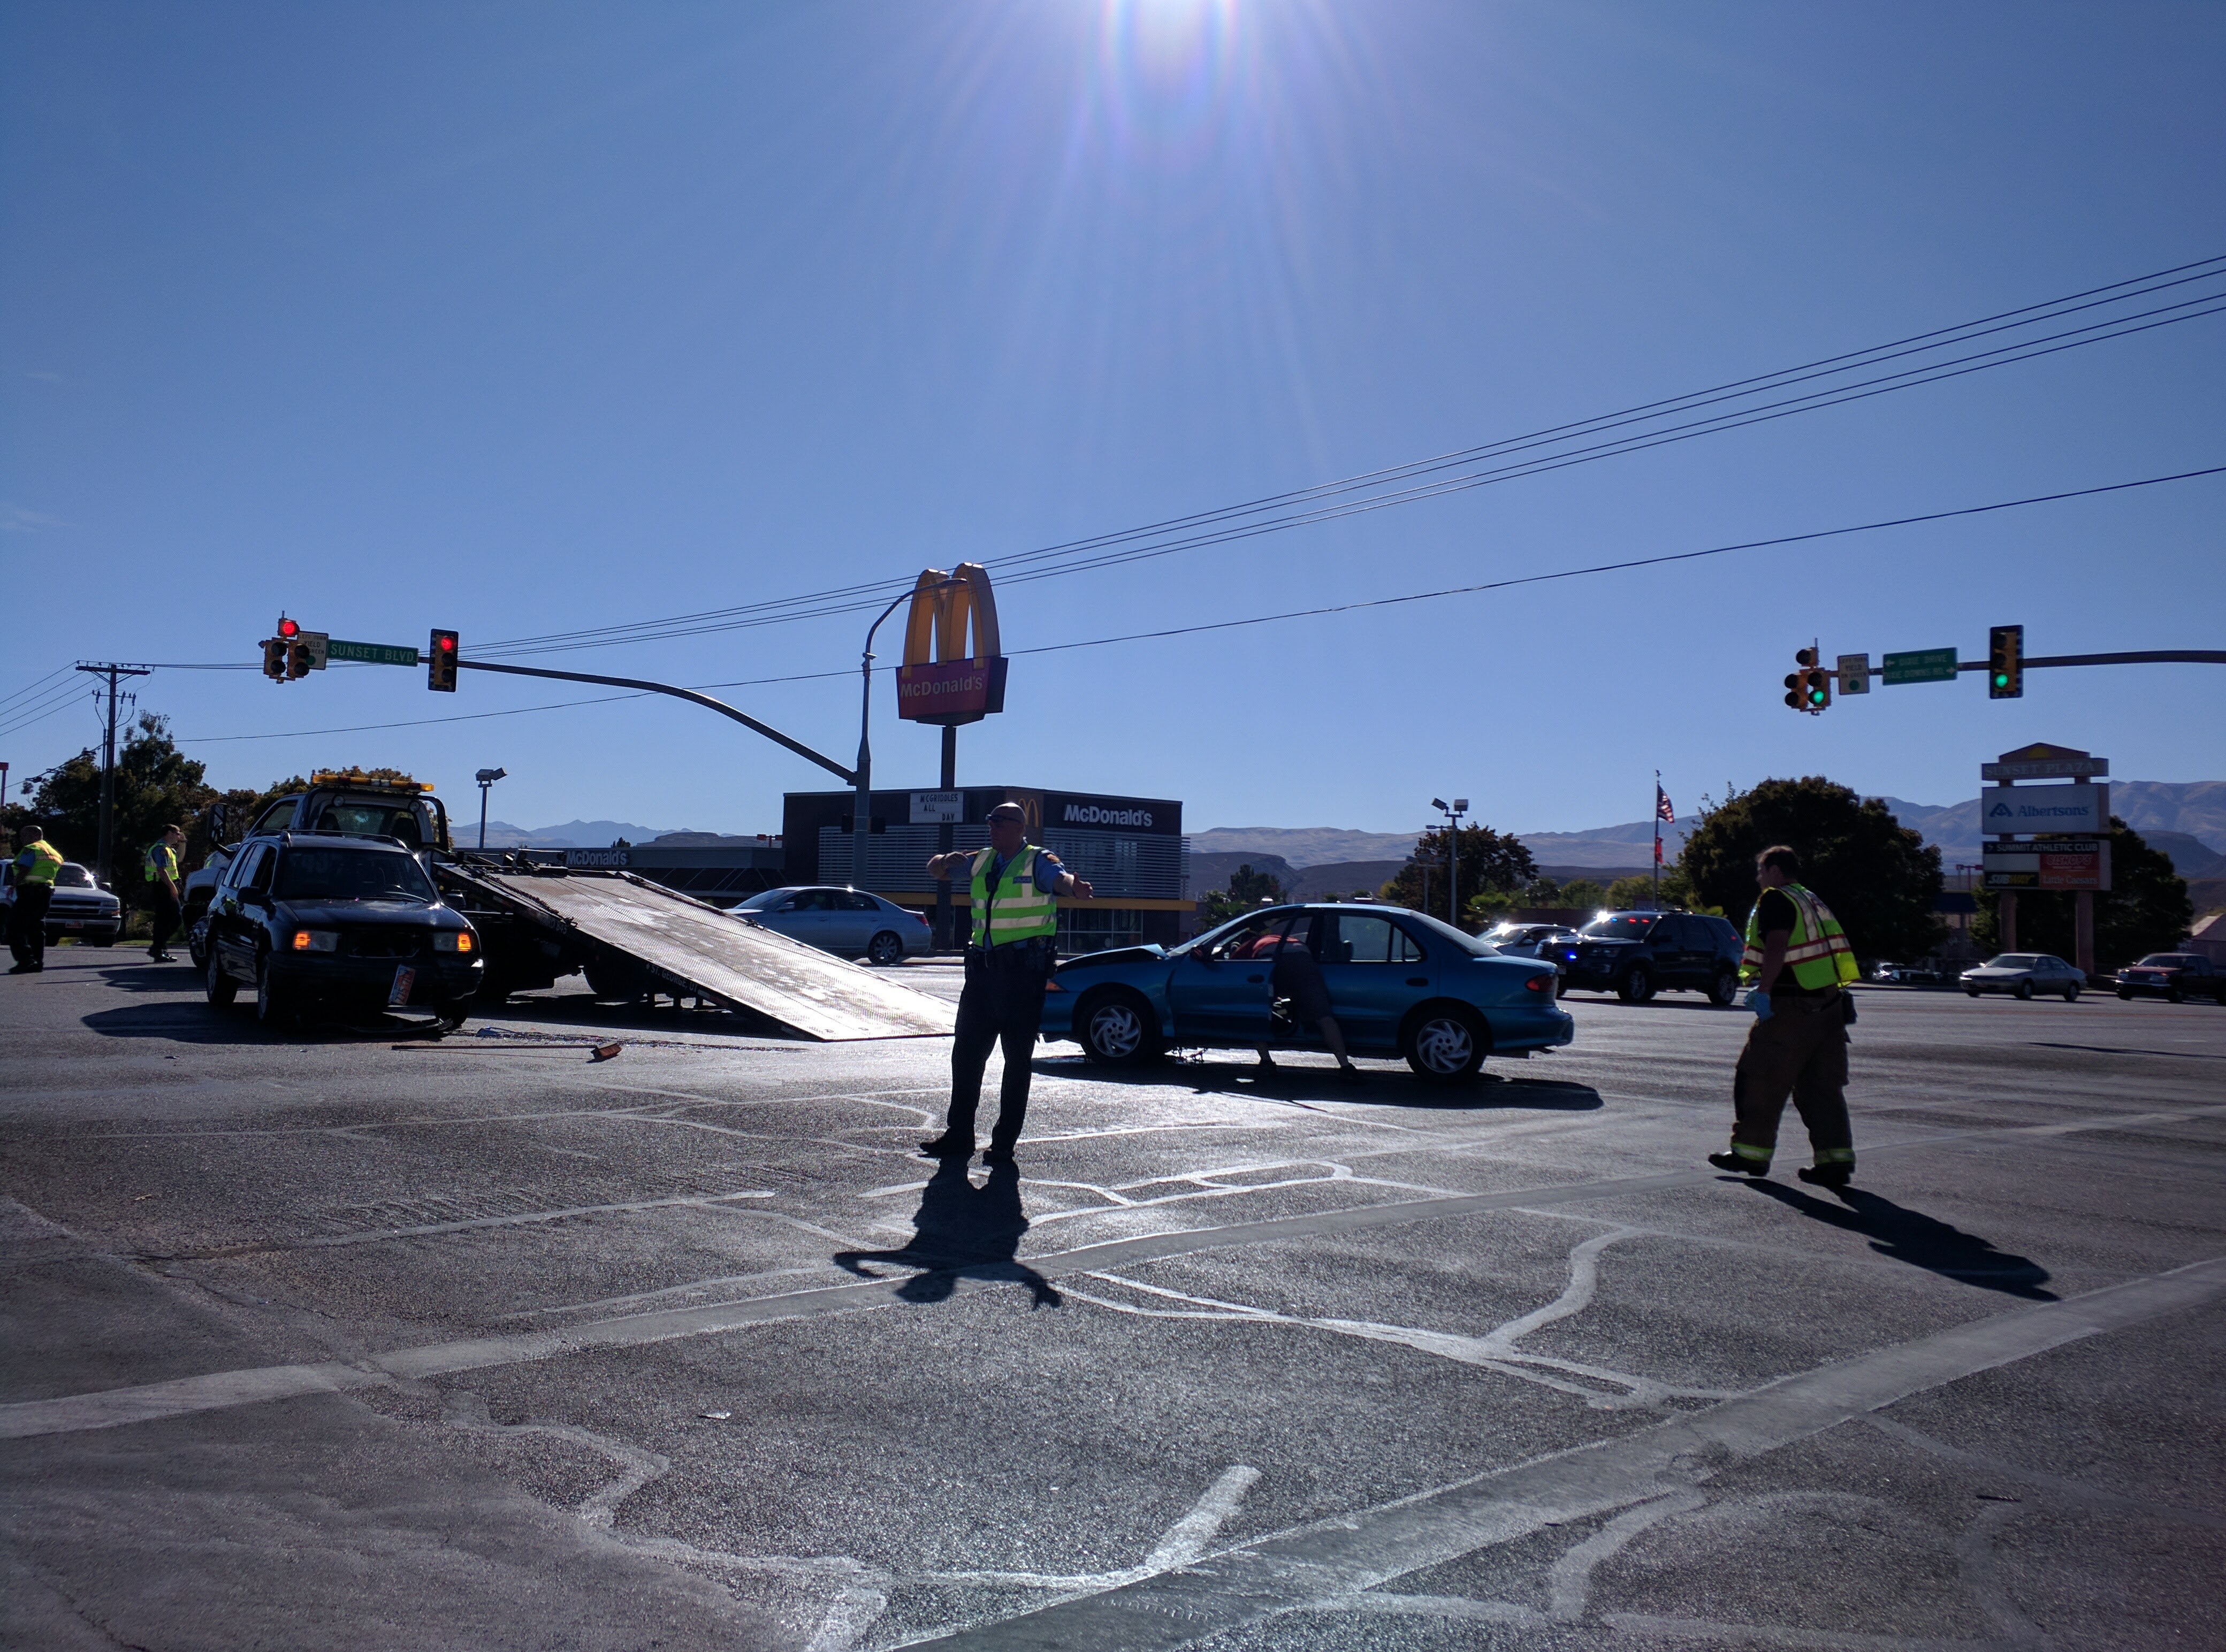 Emergency crews clean up after a collision on Sunset Boulevard, St. George, Utah, Oct 15, 2016 | Photo by Joseph Witham, St. George News